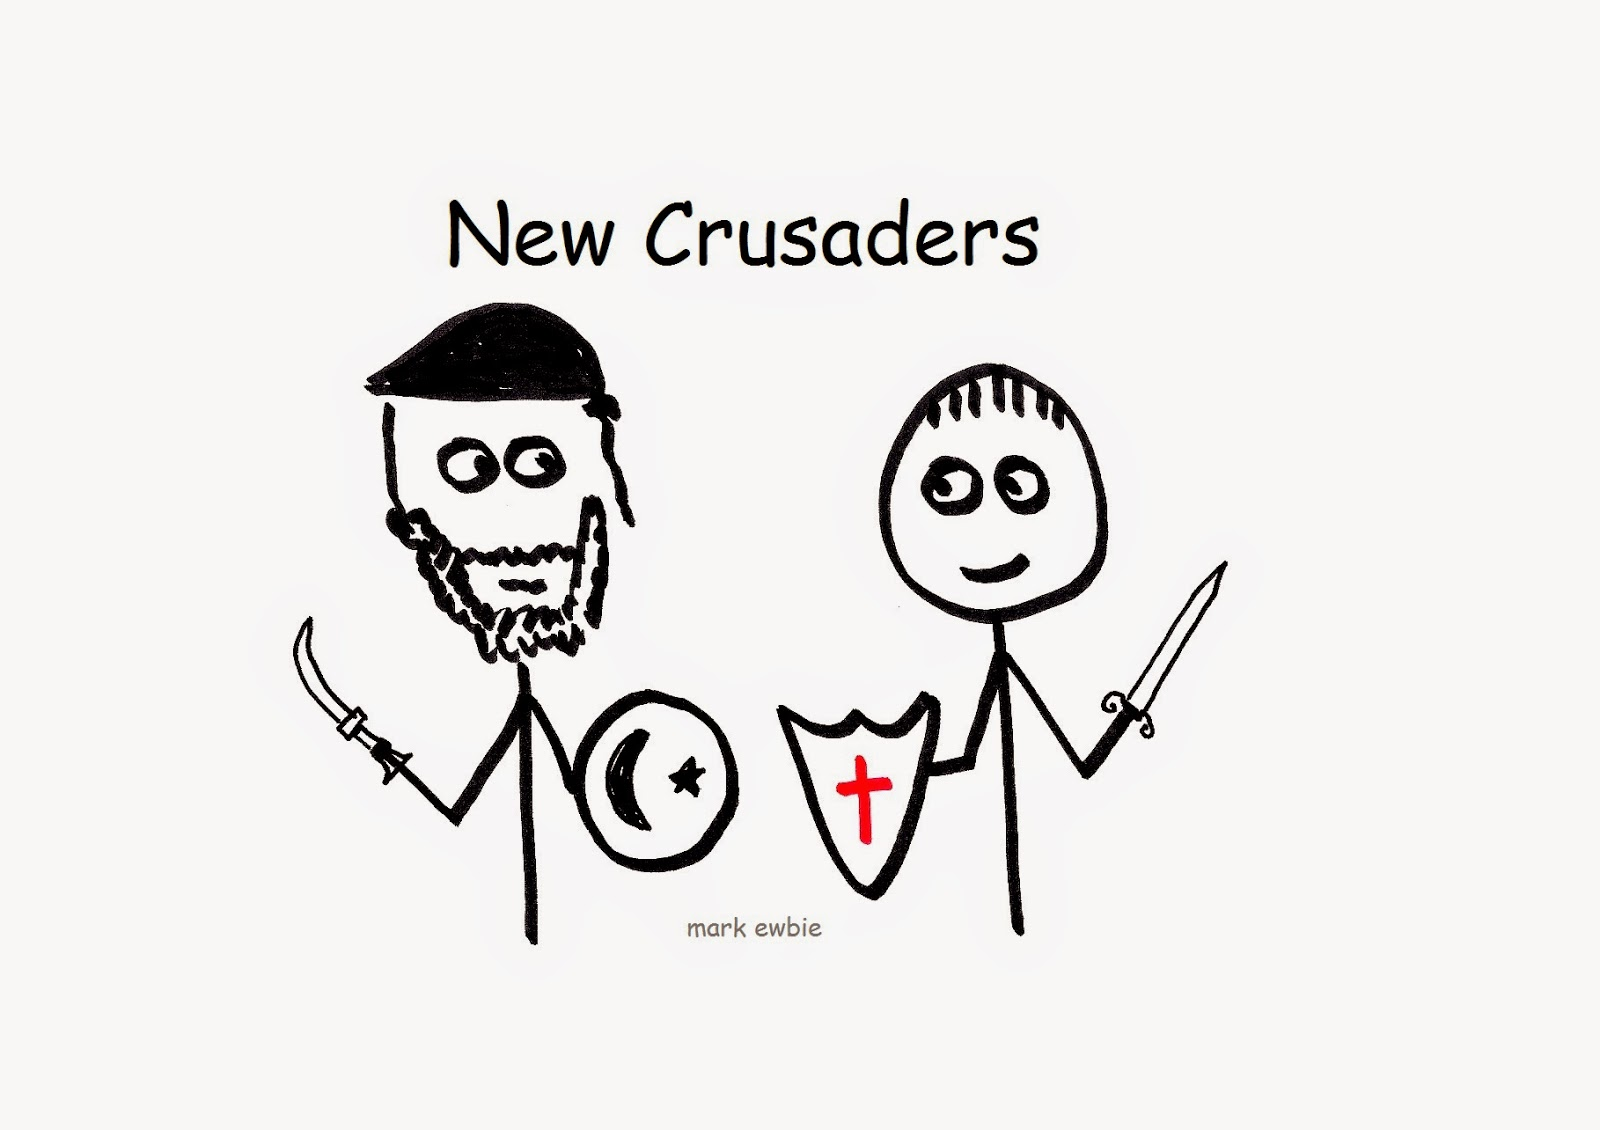 Moslem and Christian Crusade fighters